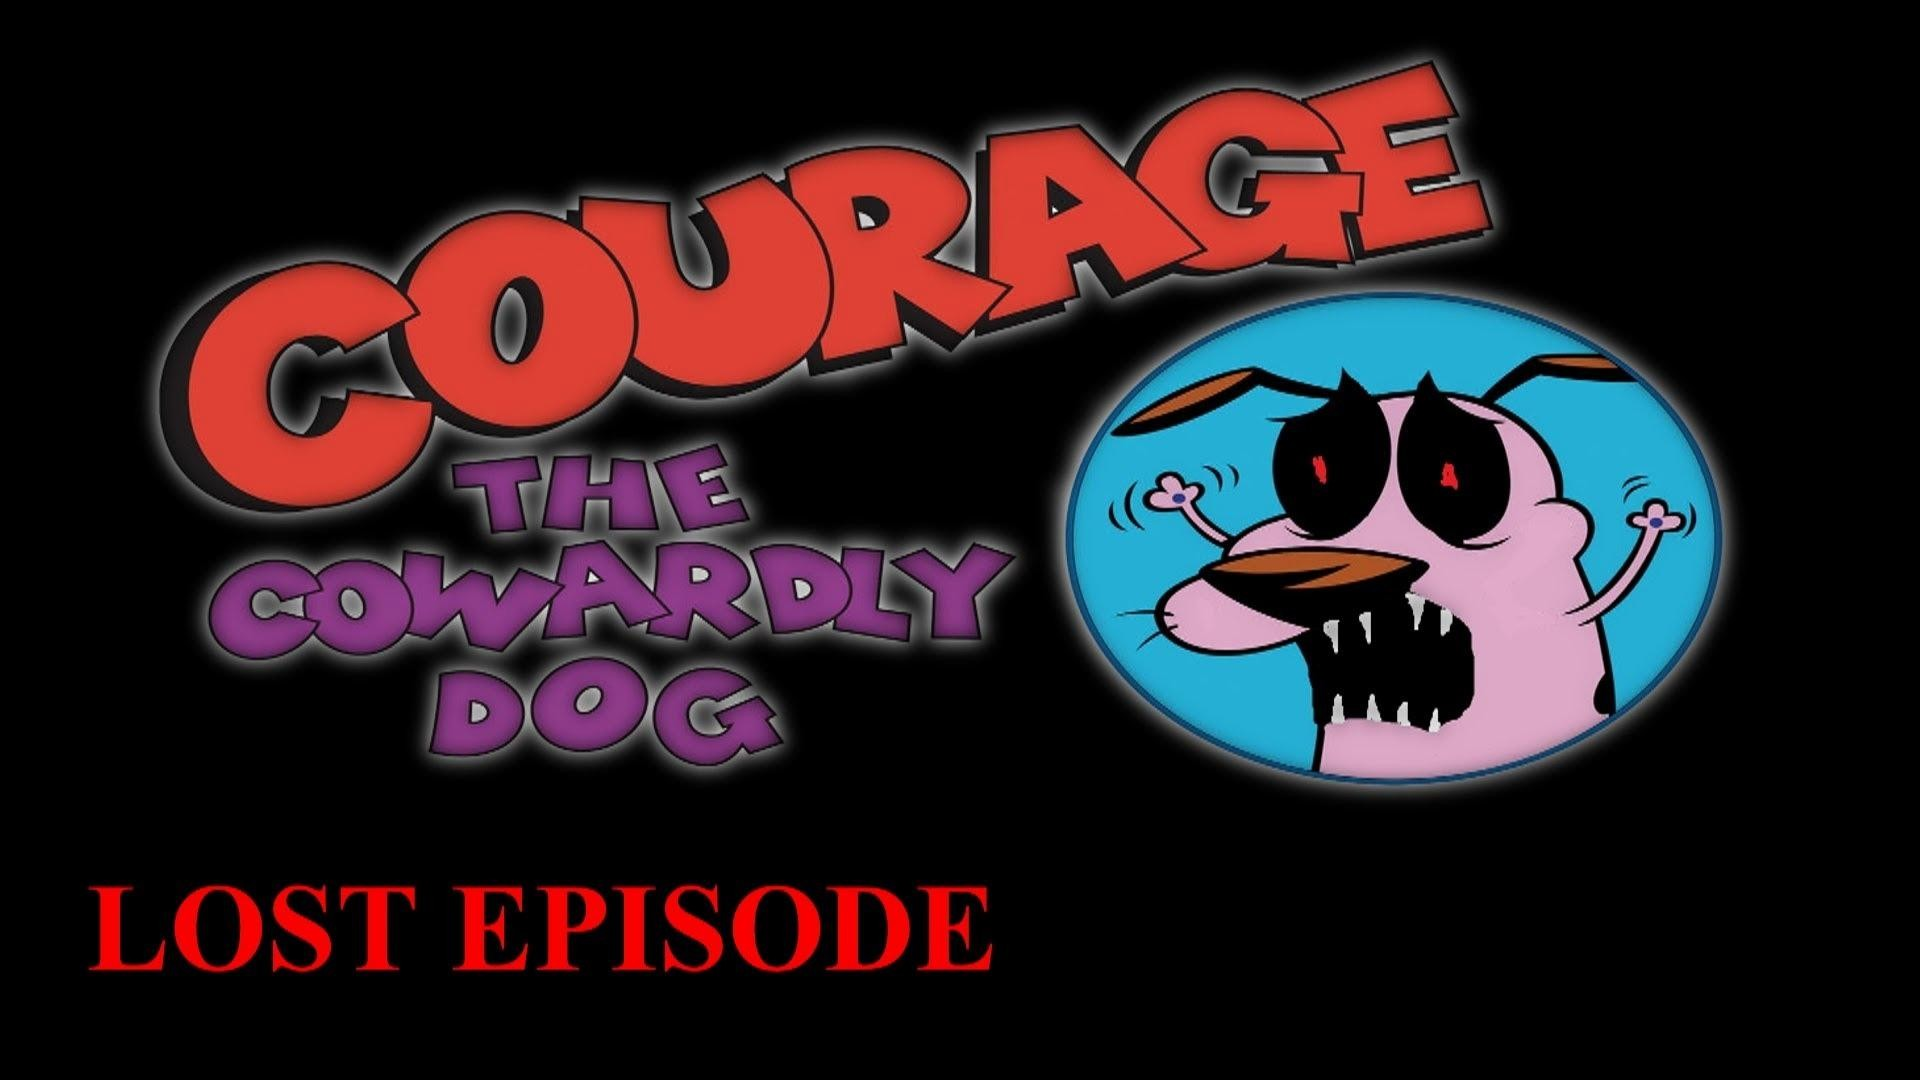 wallpaper.wiki-Image-of-Courage-The-Cowardly-Dog-